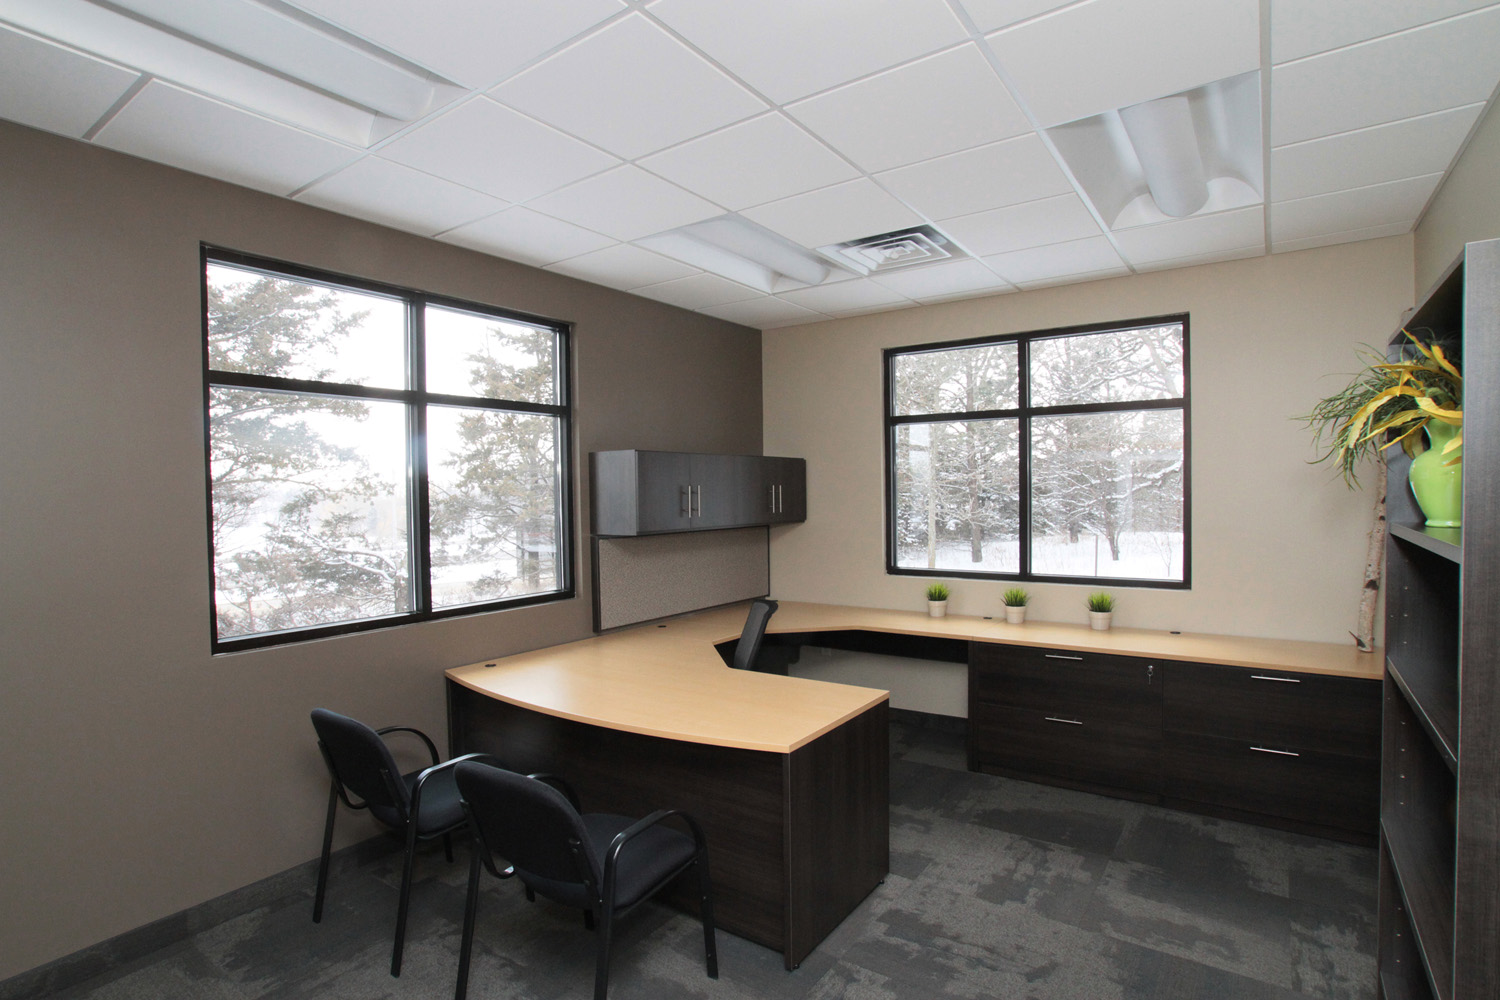 Office space design mankato new used office for Residential interior design a guide to planning spaces